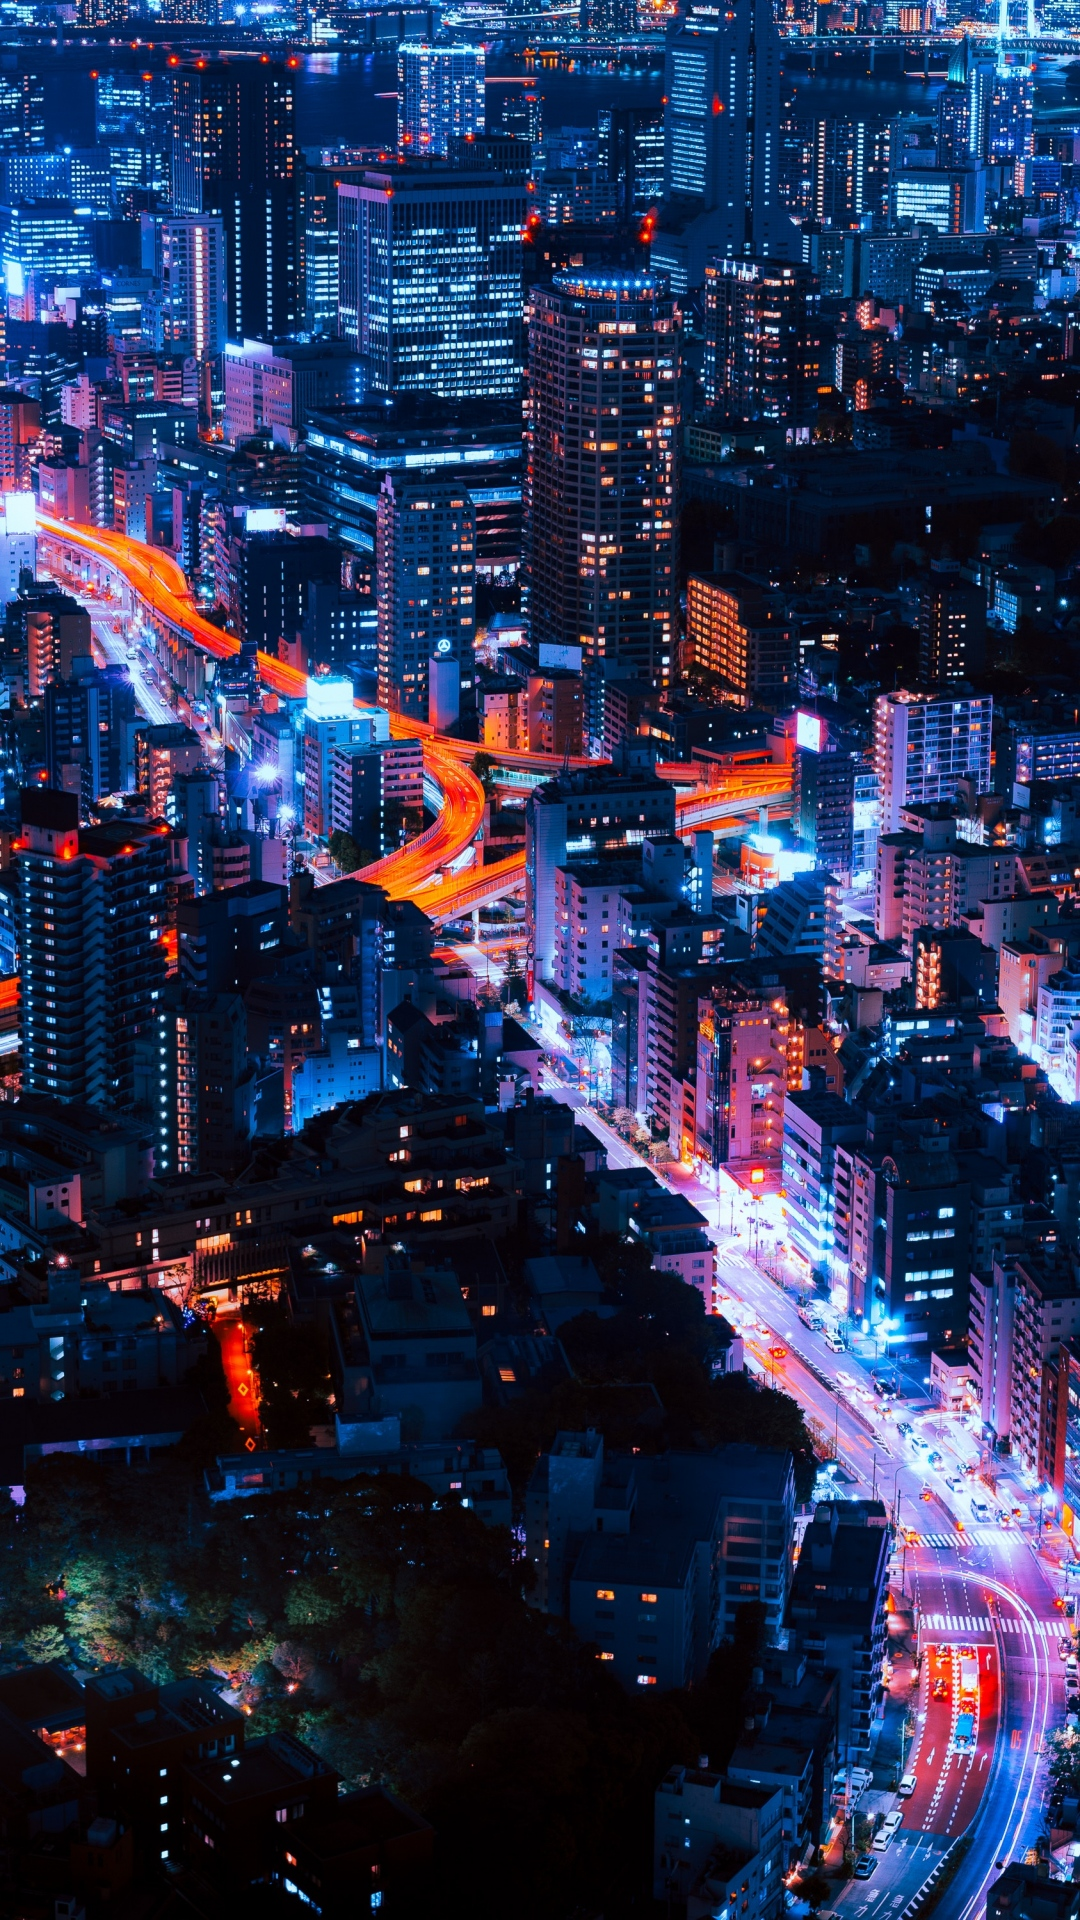 Night City Wallpaper For IPhone 11, Pro Max, X, 8, 7, 6